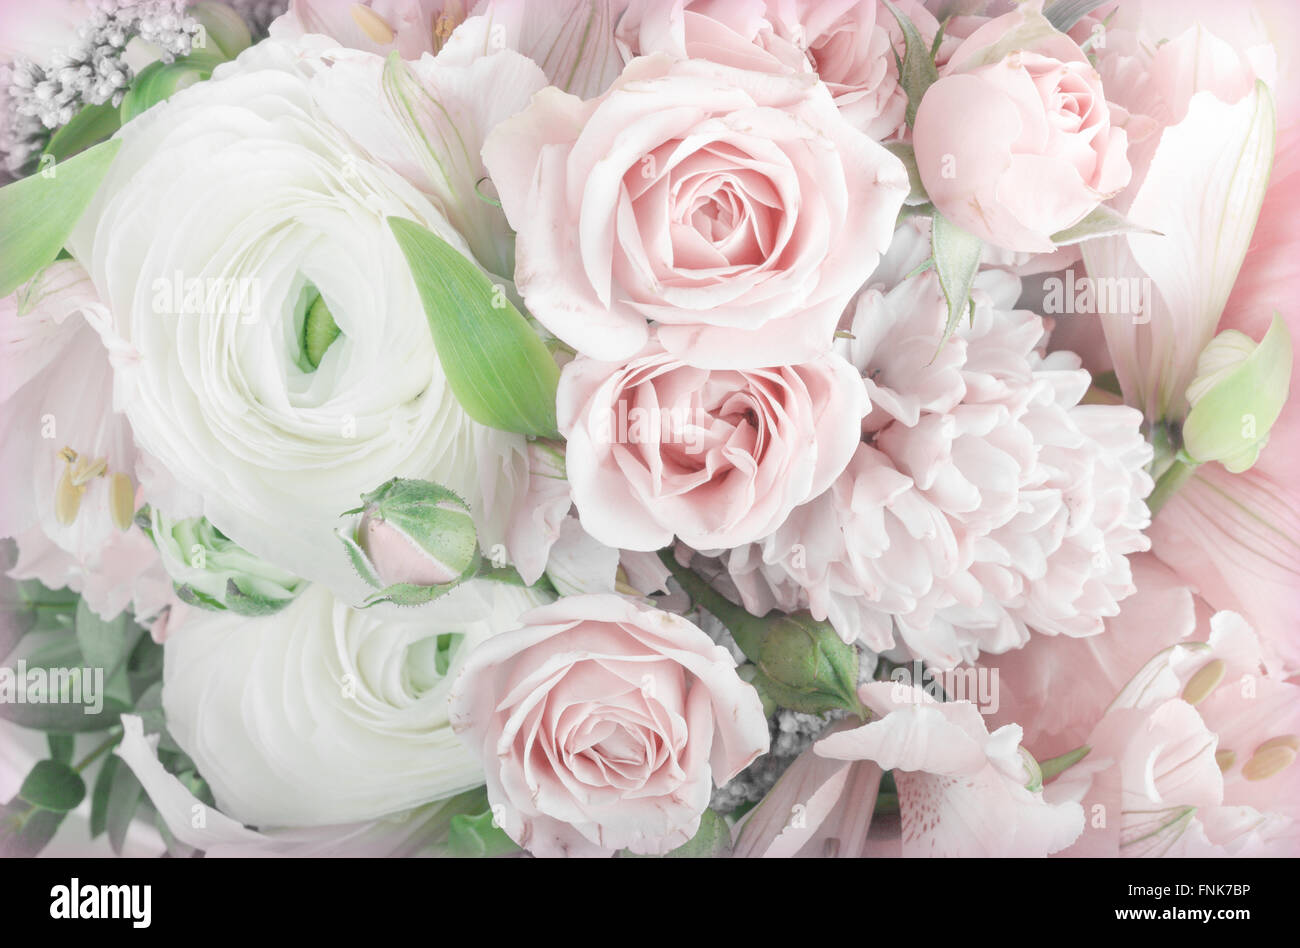 Amazing flower bouquet arrangement close up in pastel for Pastel colored flower arrangements